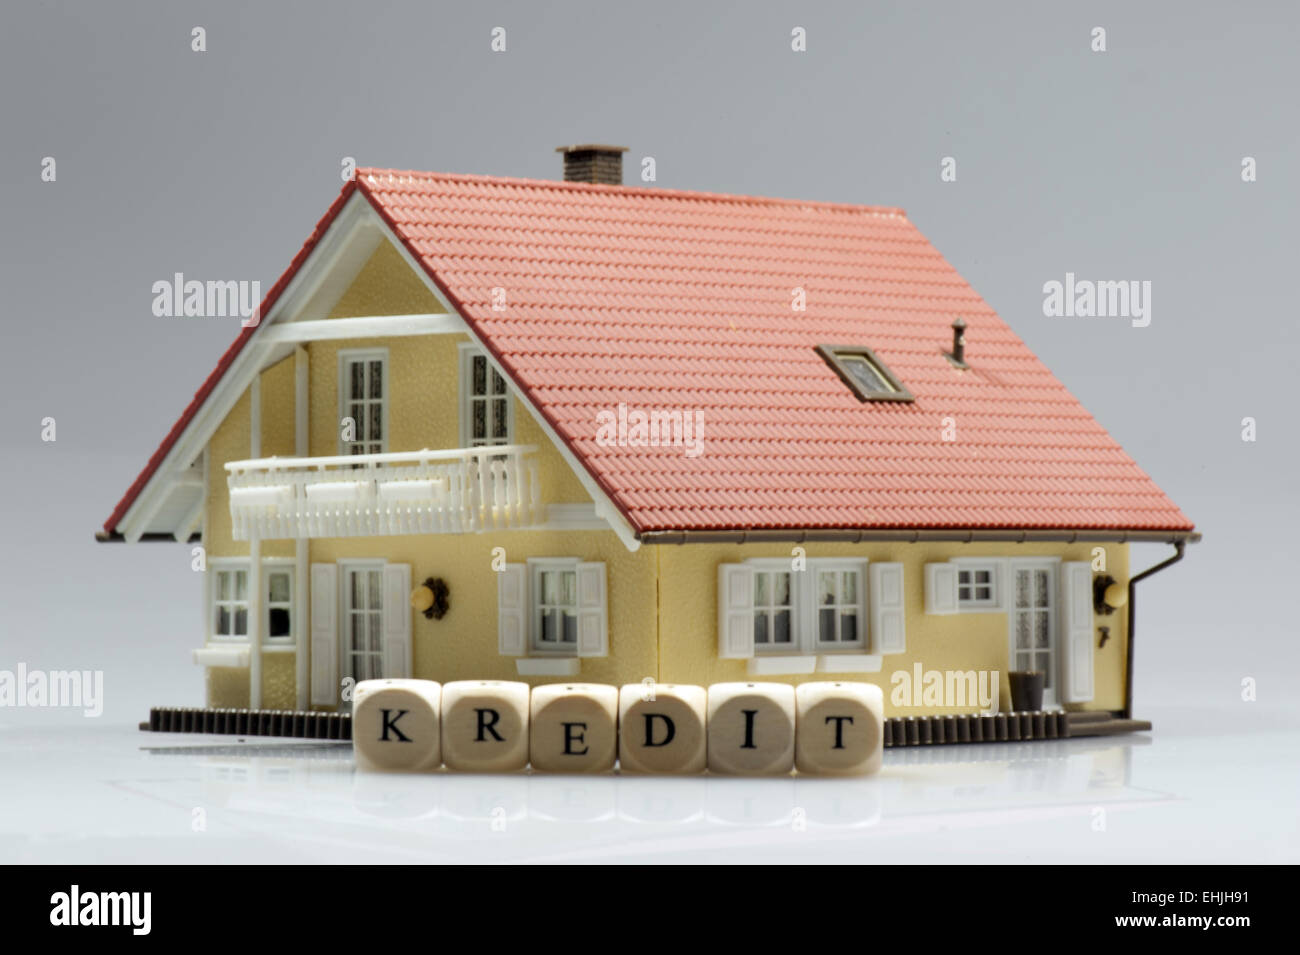 Model house with word credit - Stock Image